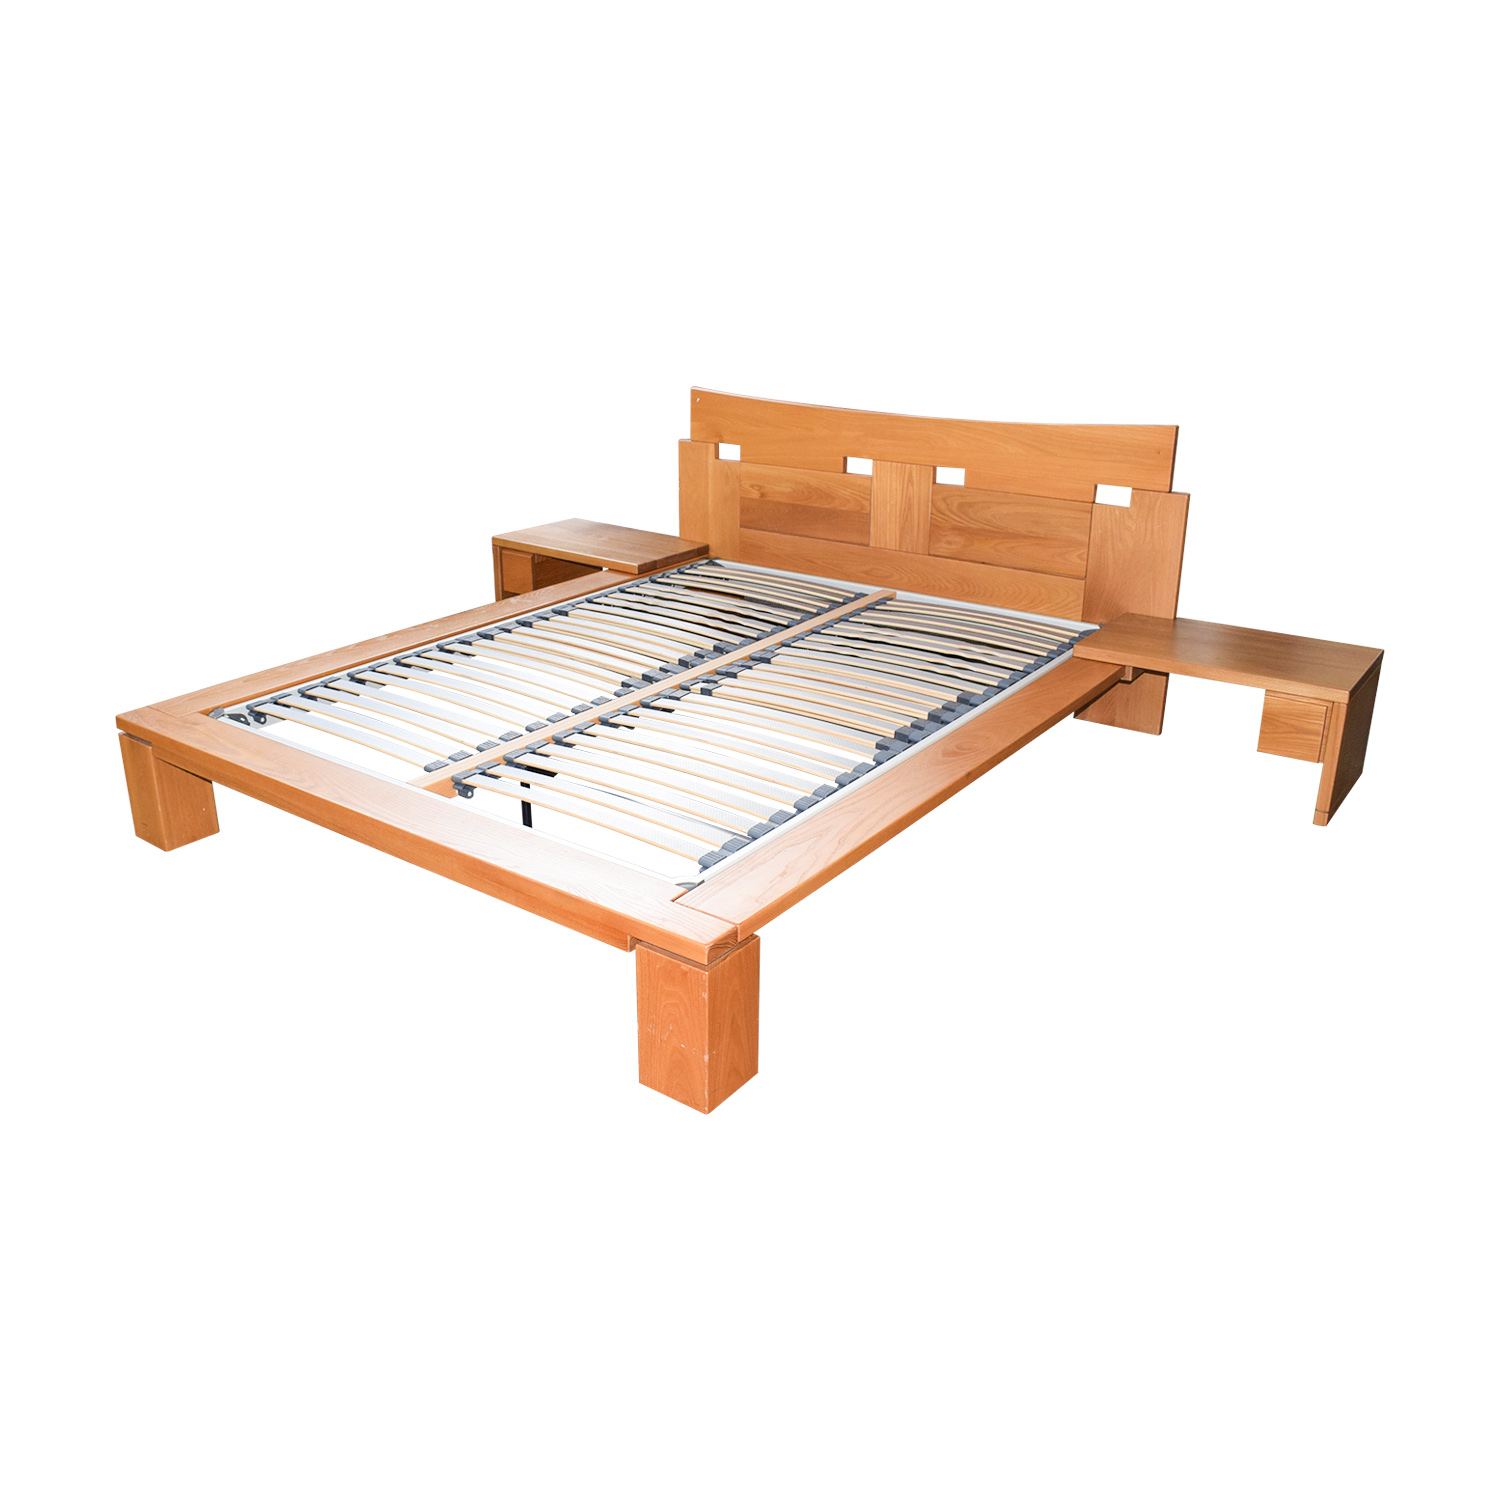 Roche Bobois Roche Bobois Wood Platform Full Bed Frame with End Tables second hand